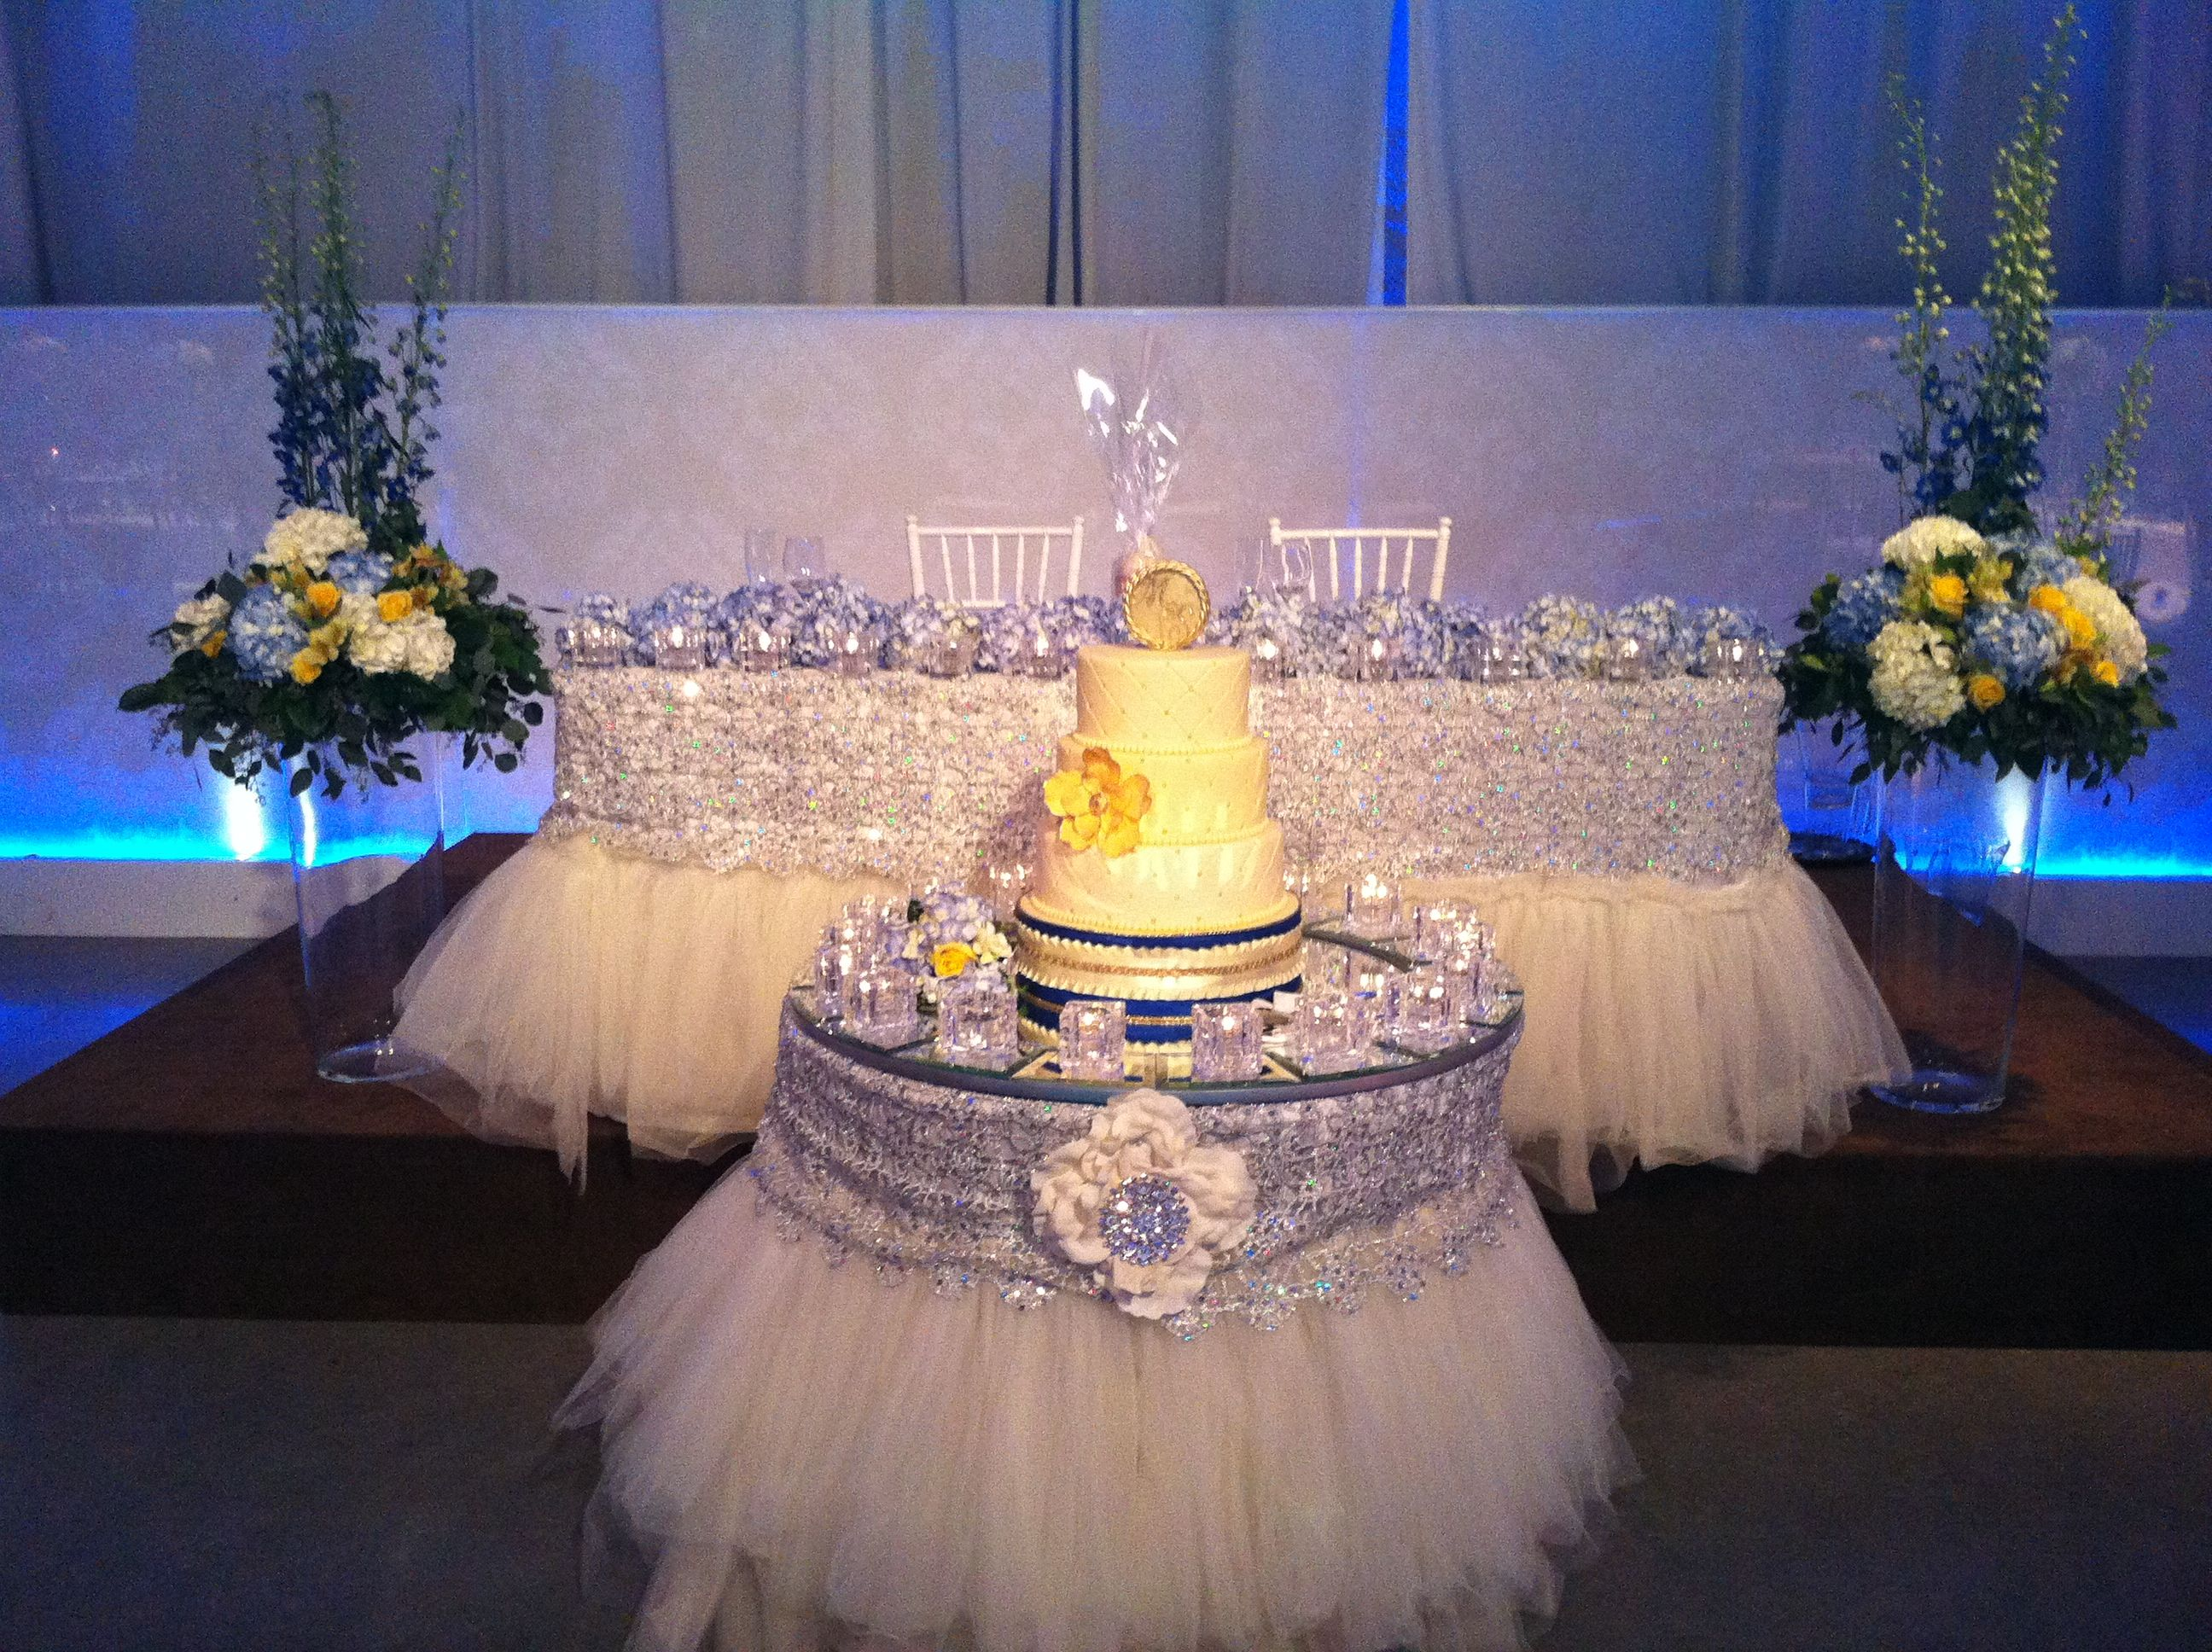 Wedding Table Second Hand Wedding Table Decorations white and silver wedding decor head table www weddinggirl ca every girl deserves to have a no bride should settle for second hand or best budget can create weddi